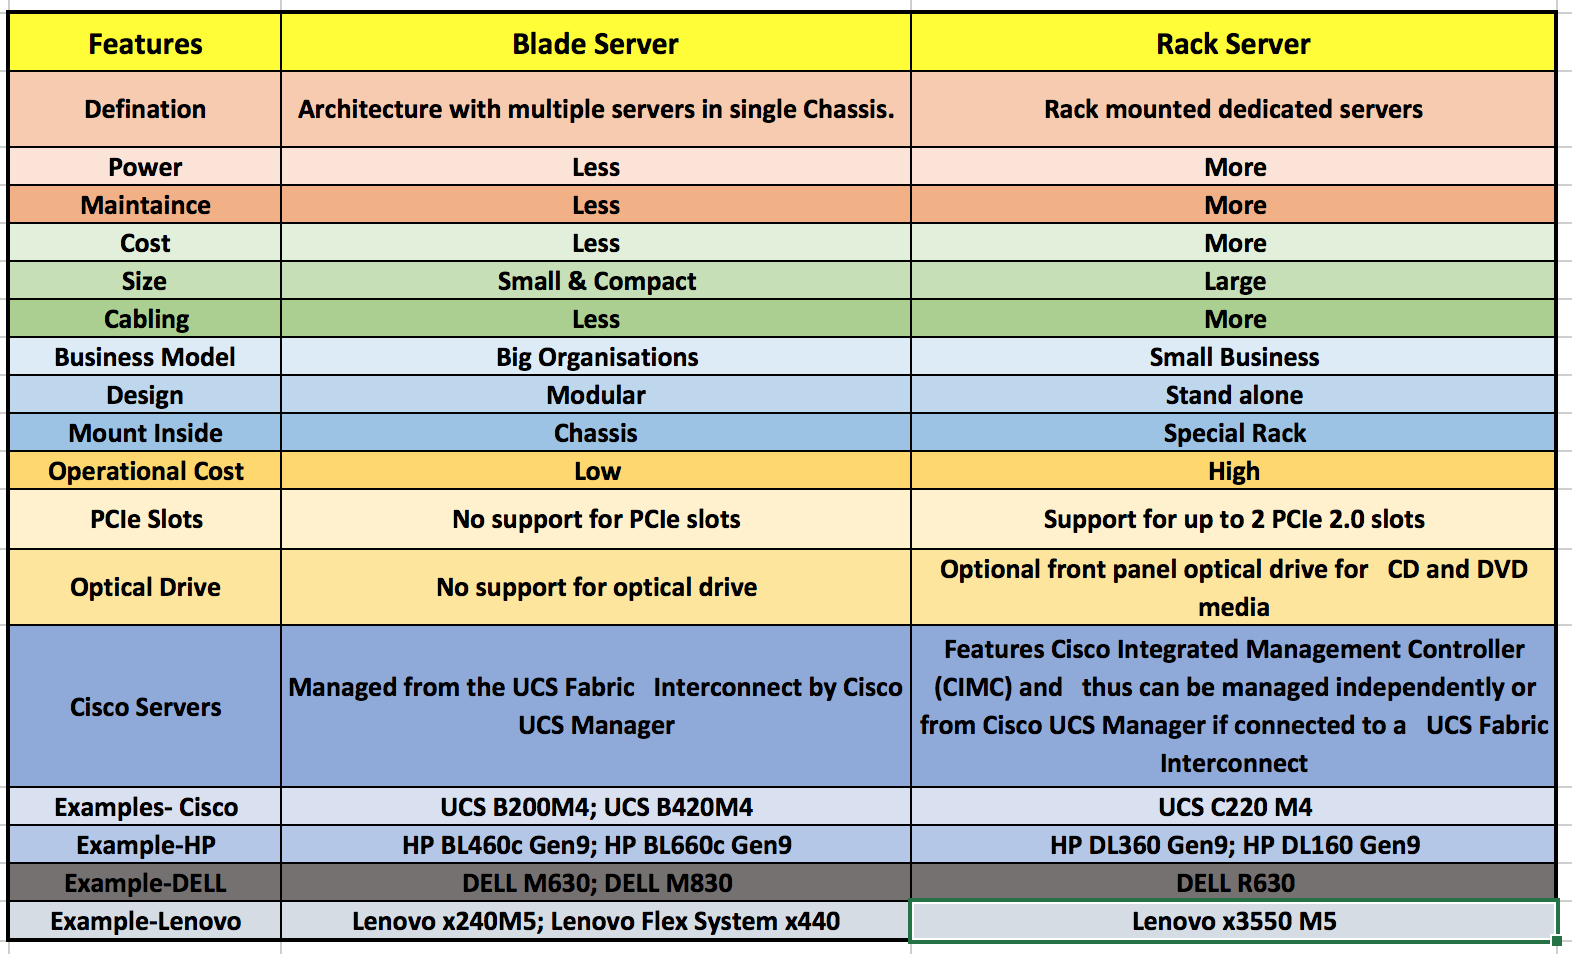 Route Xp Private Network Services Comparison Blade Vs Rack Servers Cisco Hp Dell And Lenovo